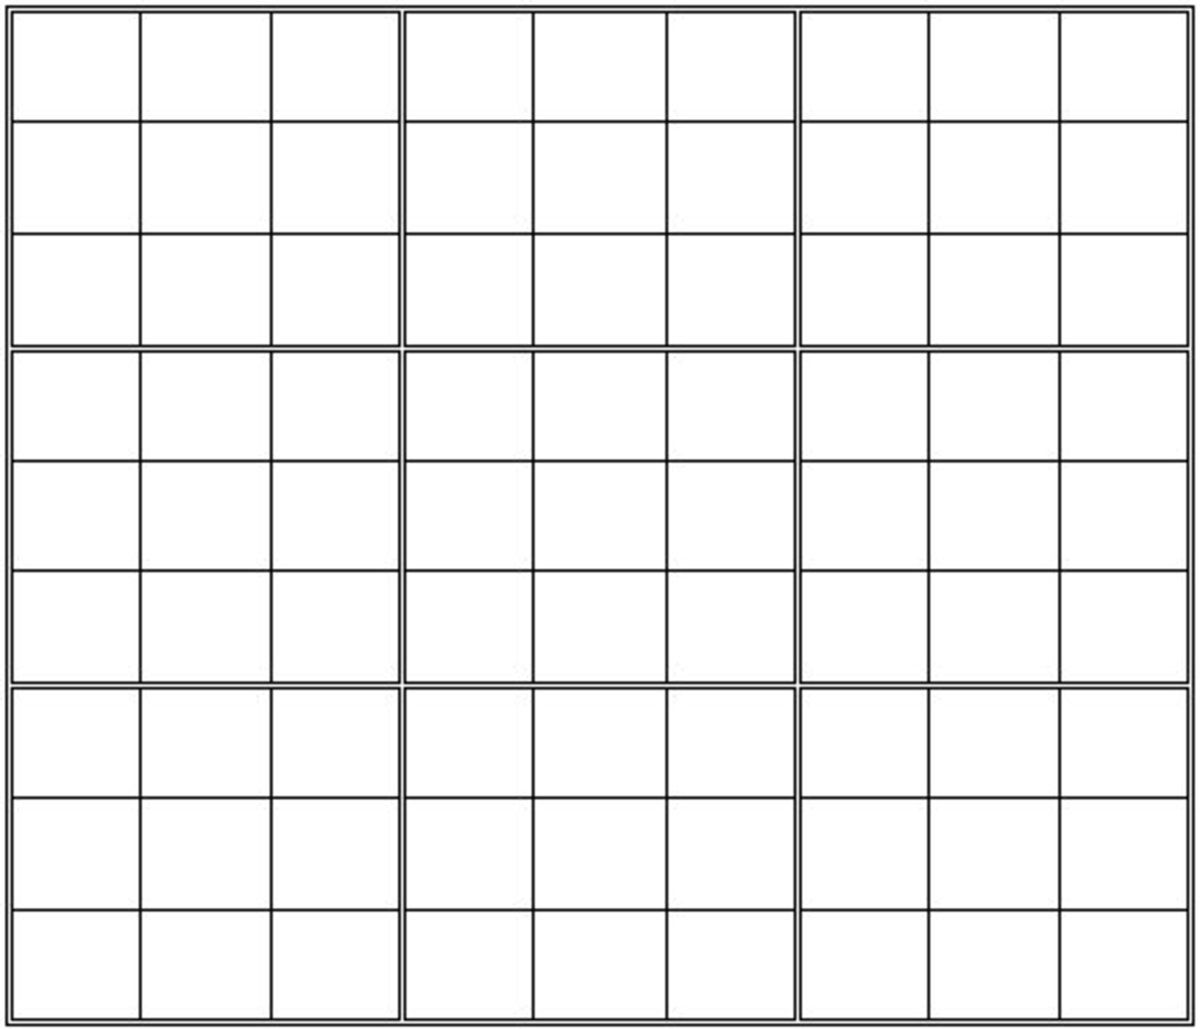 photograph about Blank Sudoku Grid Printable known as Printable Blank Sudoku Grid HubPages